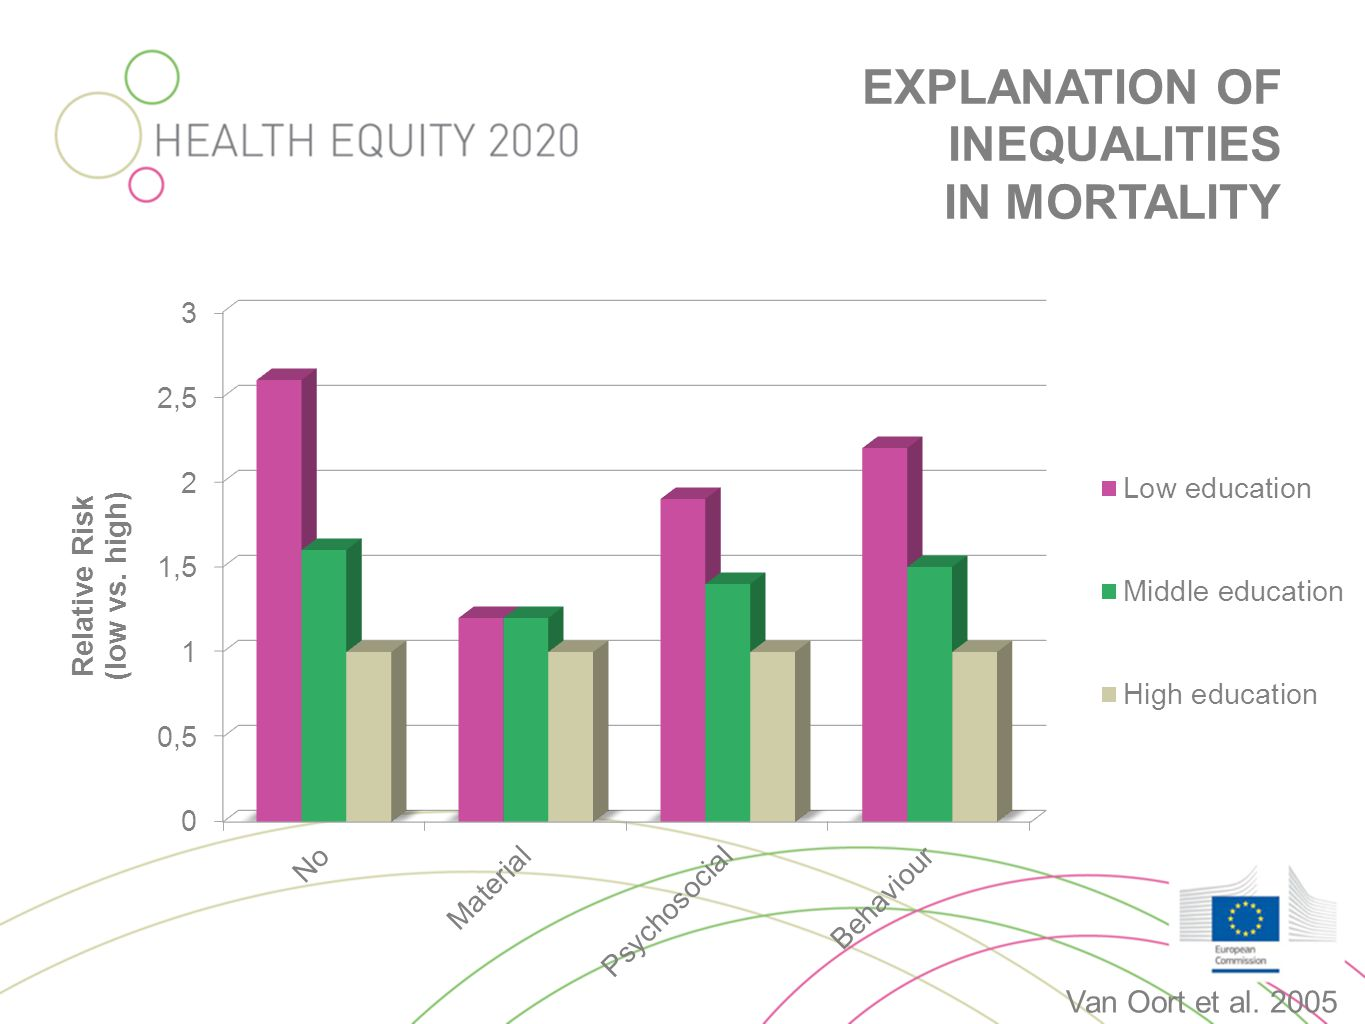 EXPLANATION OF INEQUALITIES IN MORTALITY Van Oort et al. 2005